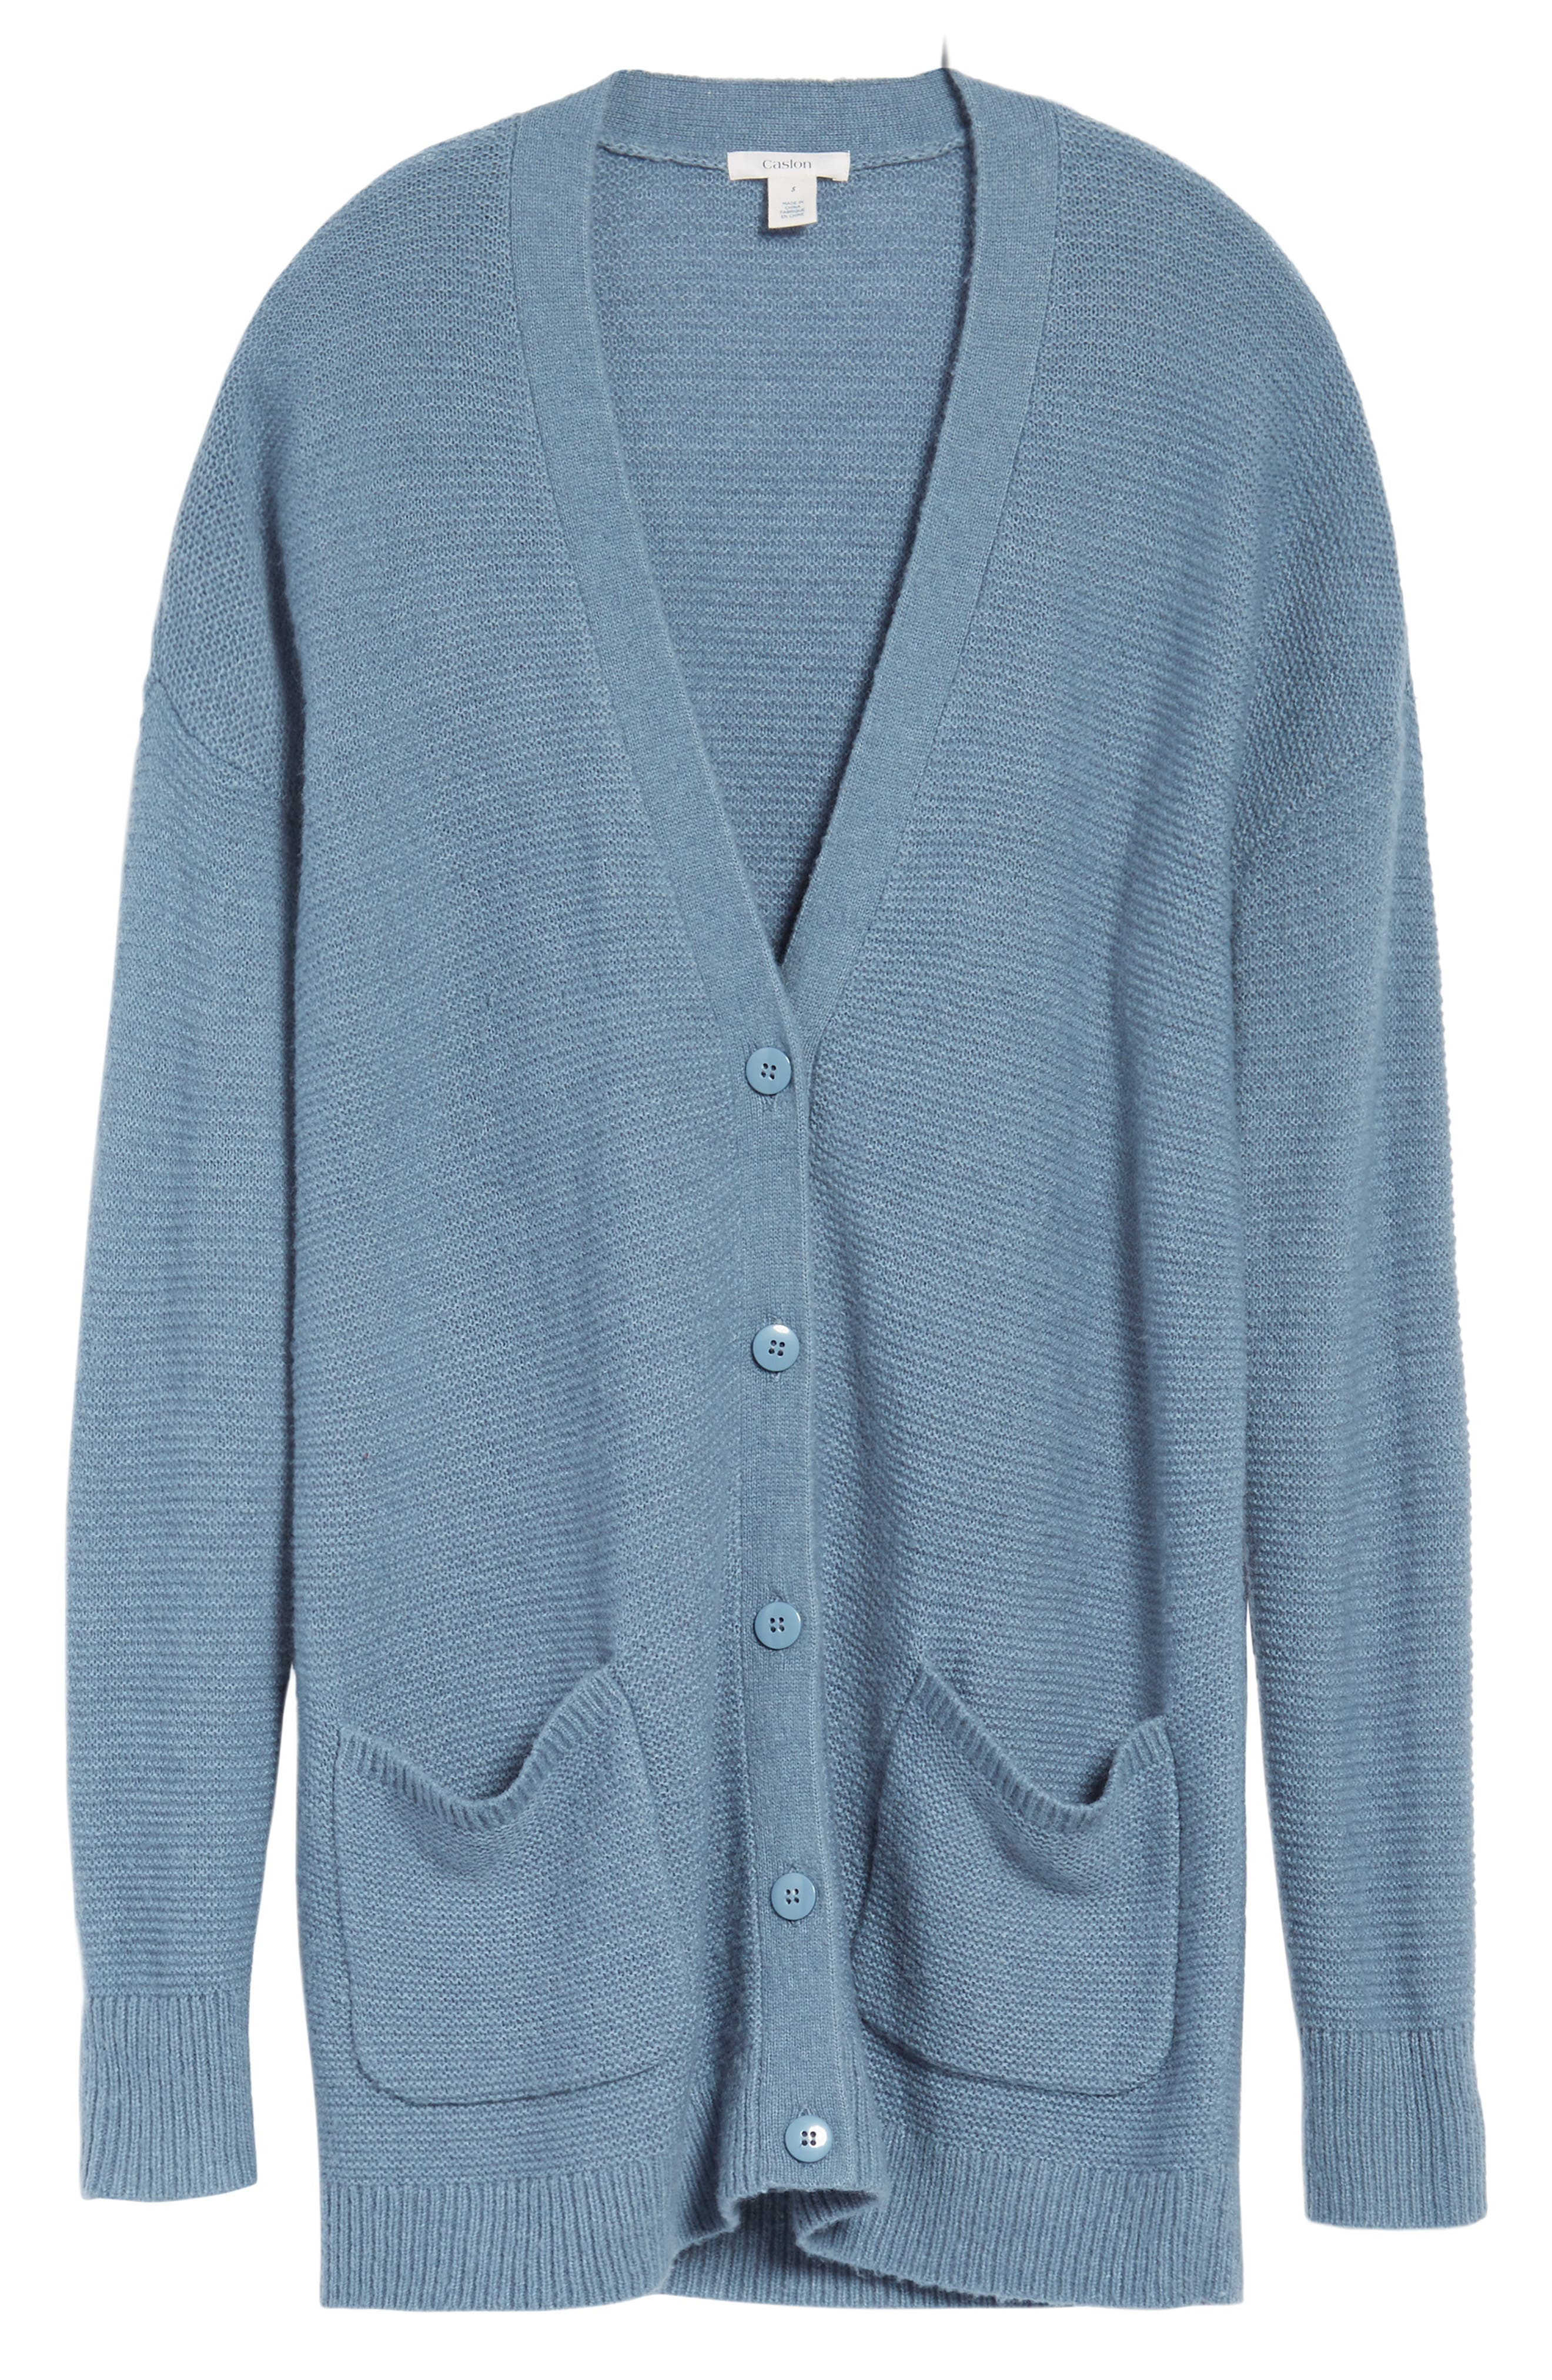 Relaxed Boyfriend Cardigan,                             Alternate thumbnail 6, color,                             Blue